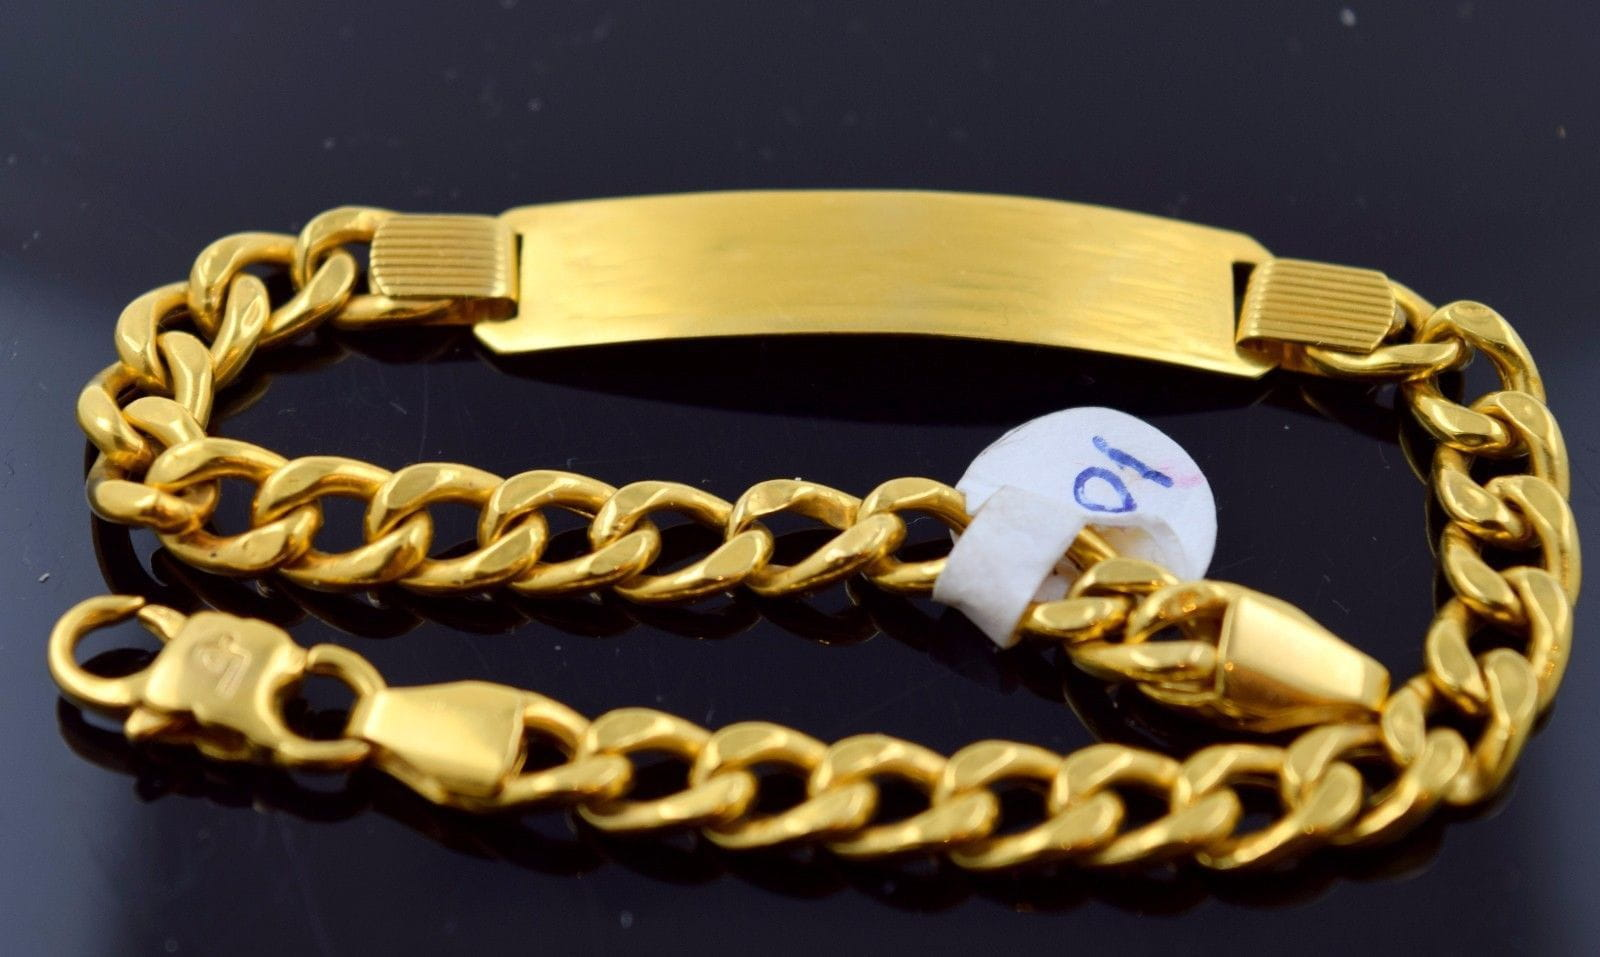 c50c7e5ada82d 22k 22ct Solid Gold DESIGNER MEN CURB LINK ENGRAVE BRACELET LENGHT 8.8in  B588 - Royal